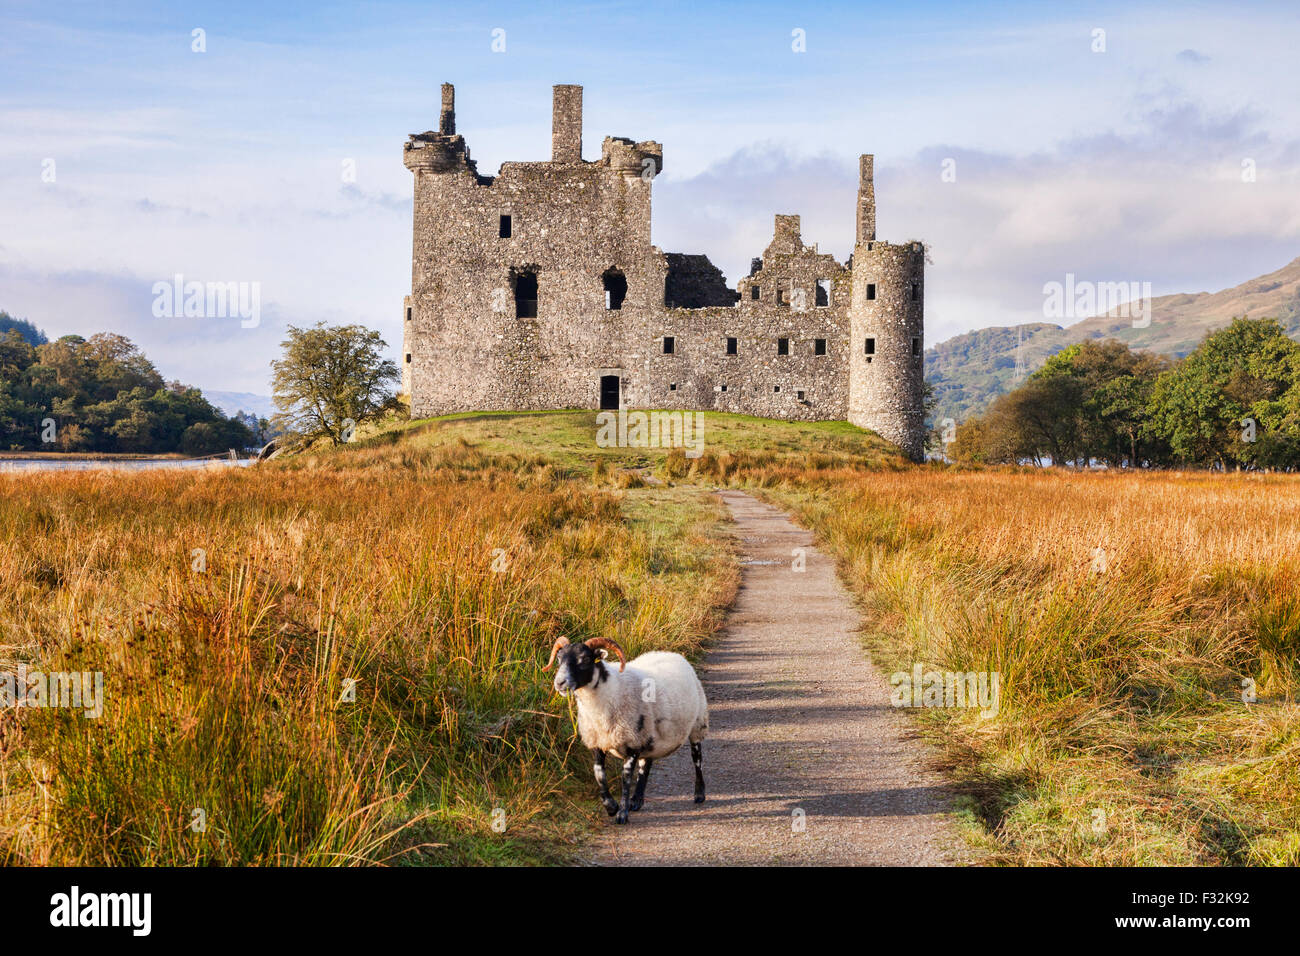 Kilchurn Castle, the path leading to it and a Scottish Blackface ram, Loch Awe, Argyll and Bute, Scotland, UK. - Stock Image